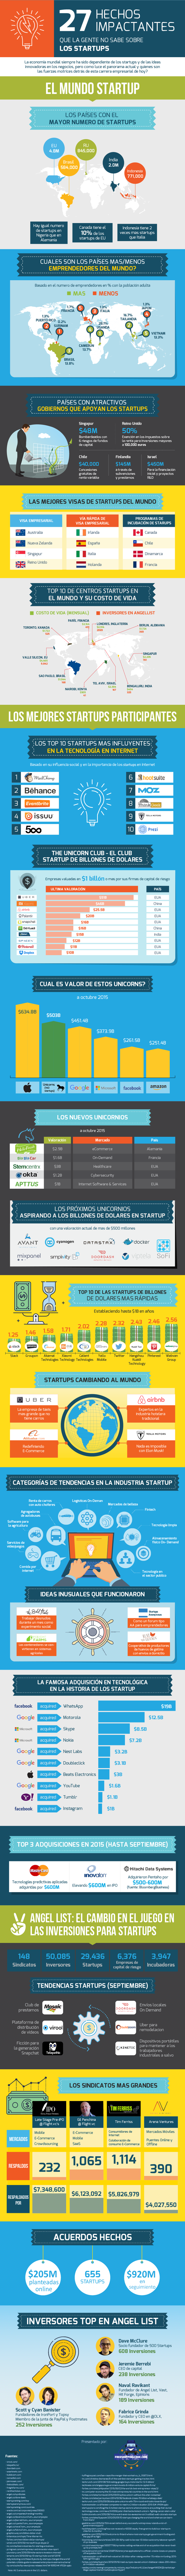 infografia-27-hechos-impactantes-startups-free-shipping-code -acens-blog-cloud